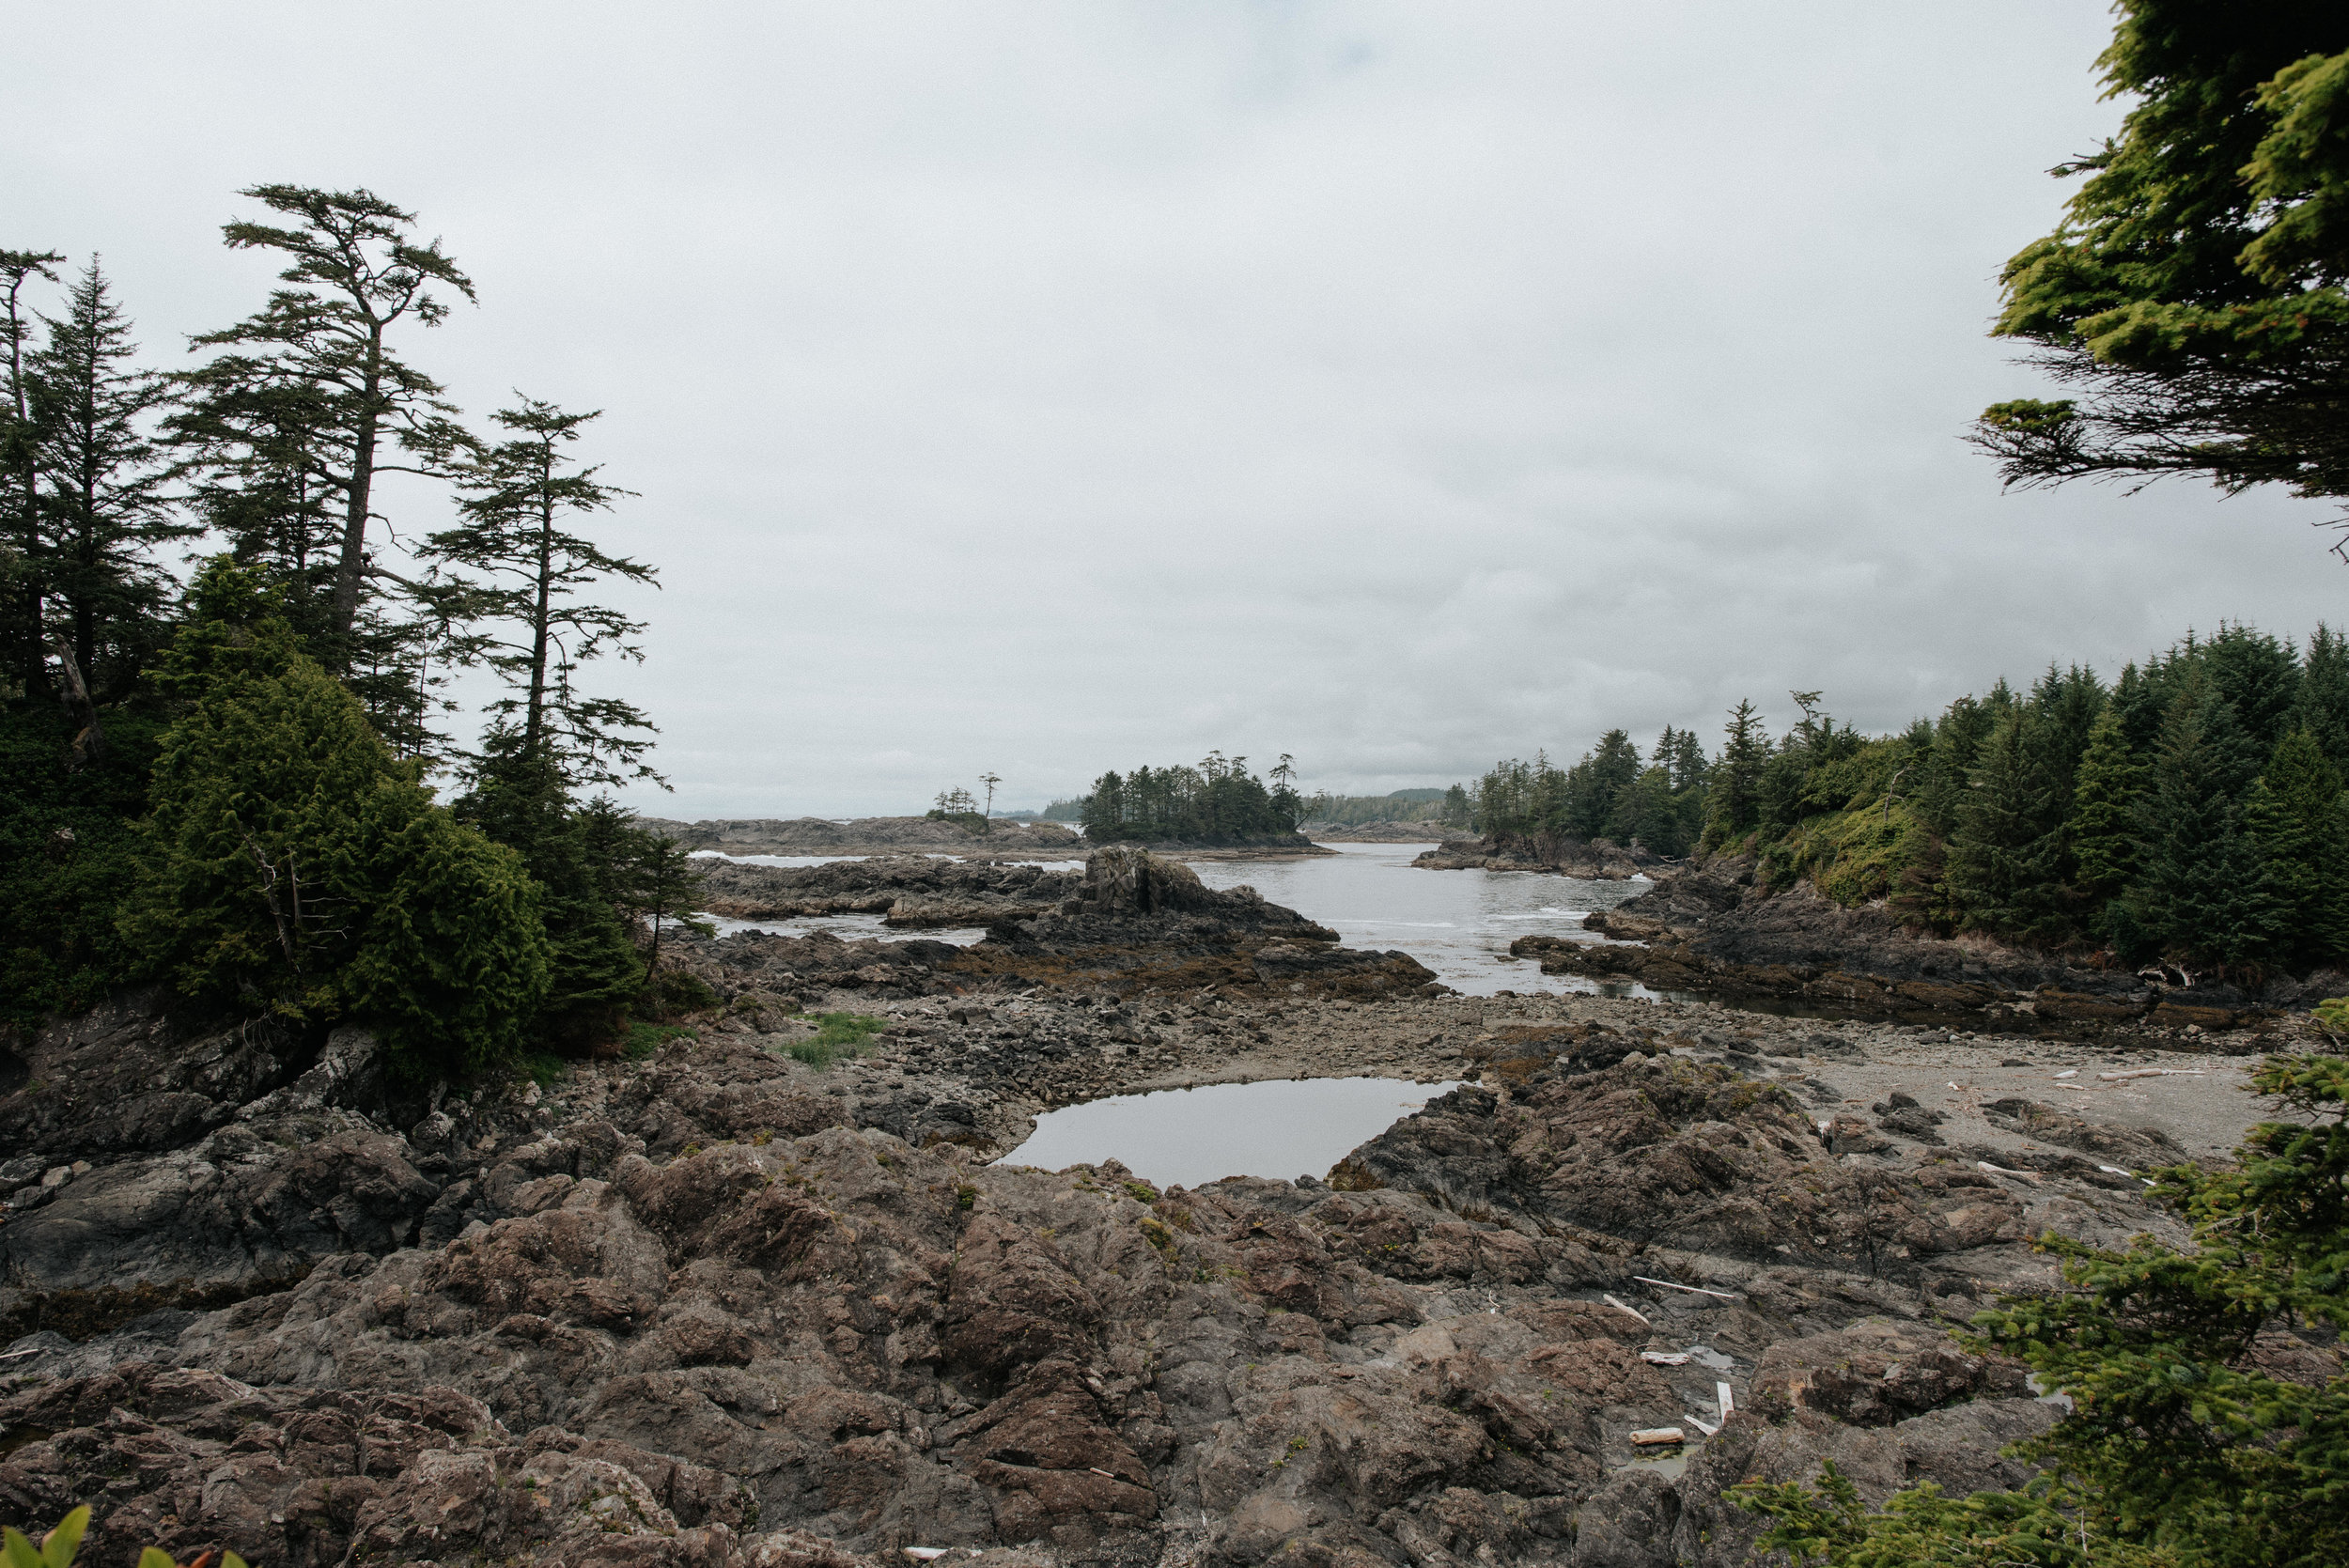 Wild Pacific Trail in Ucluelet, British Columbia